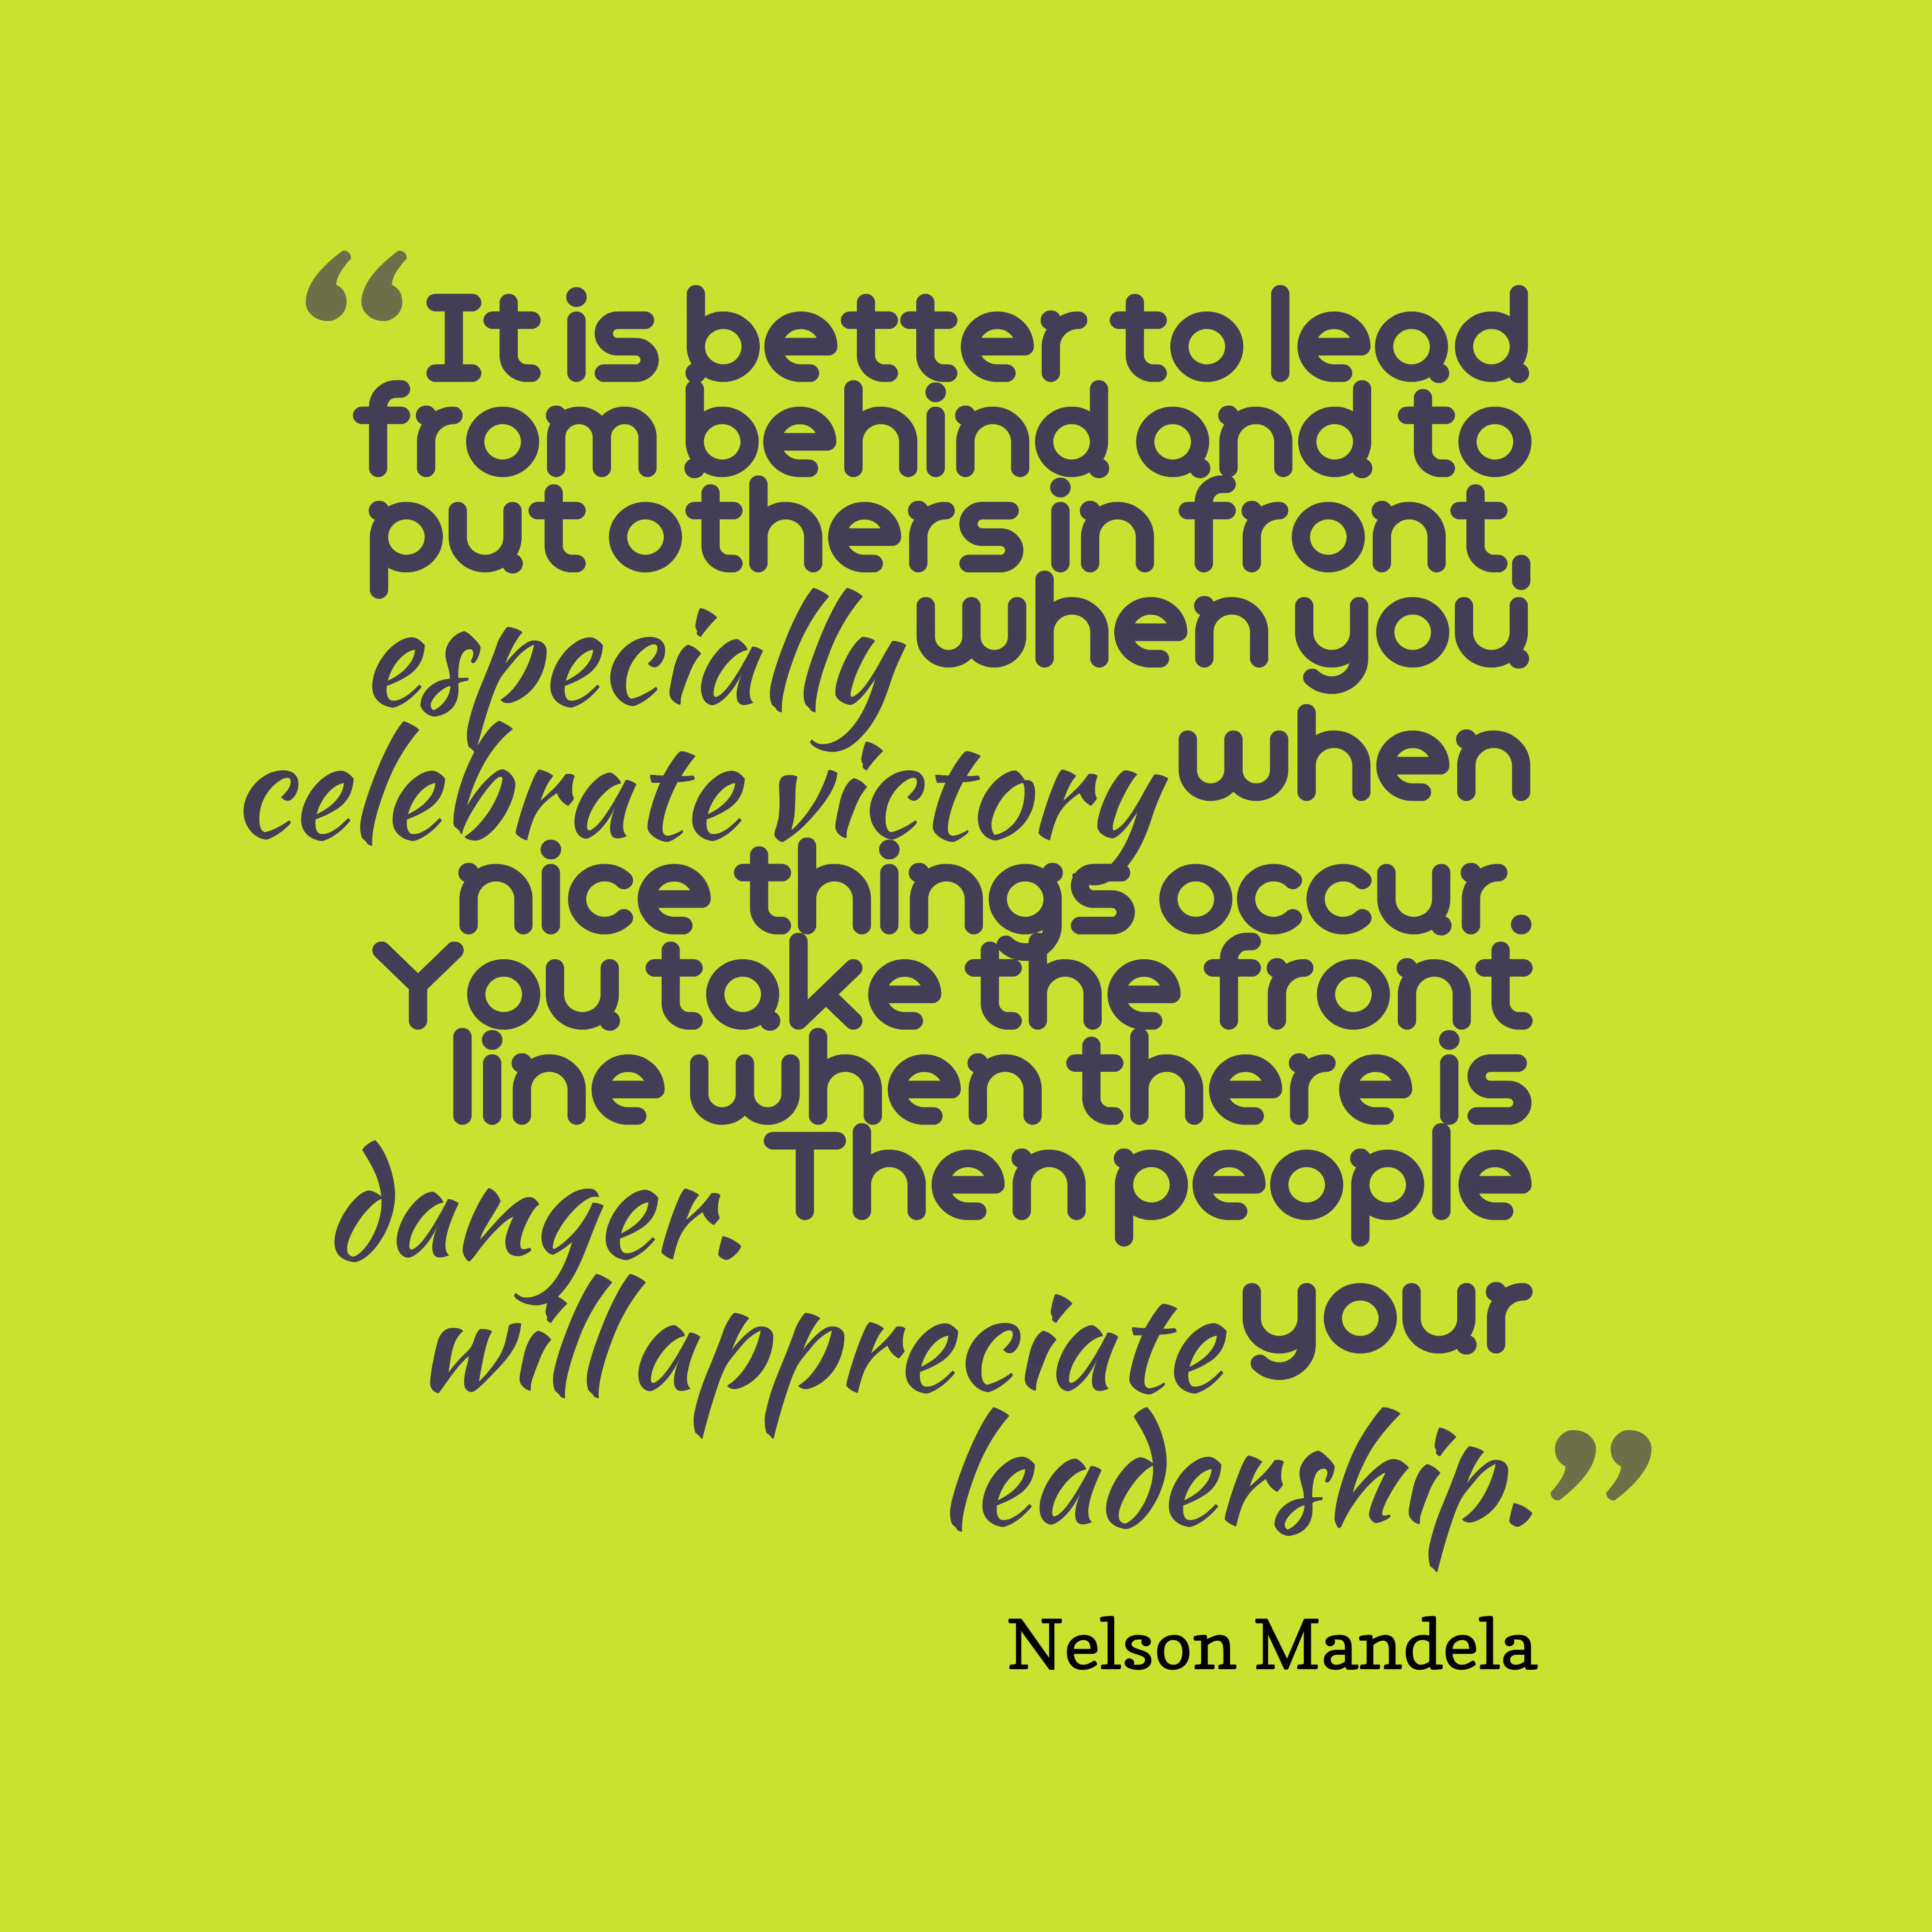 Nelson Mandela Quote About Leadership